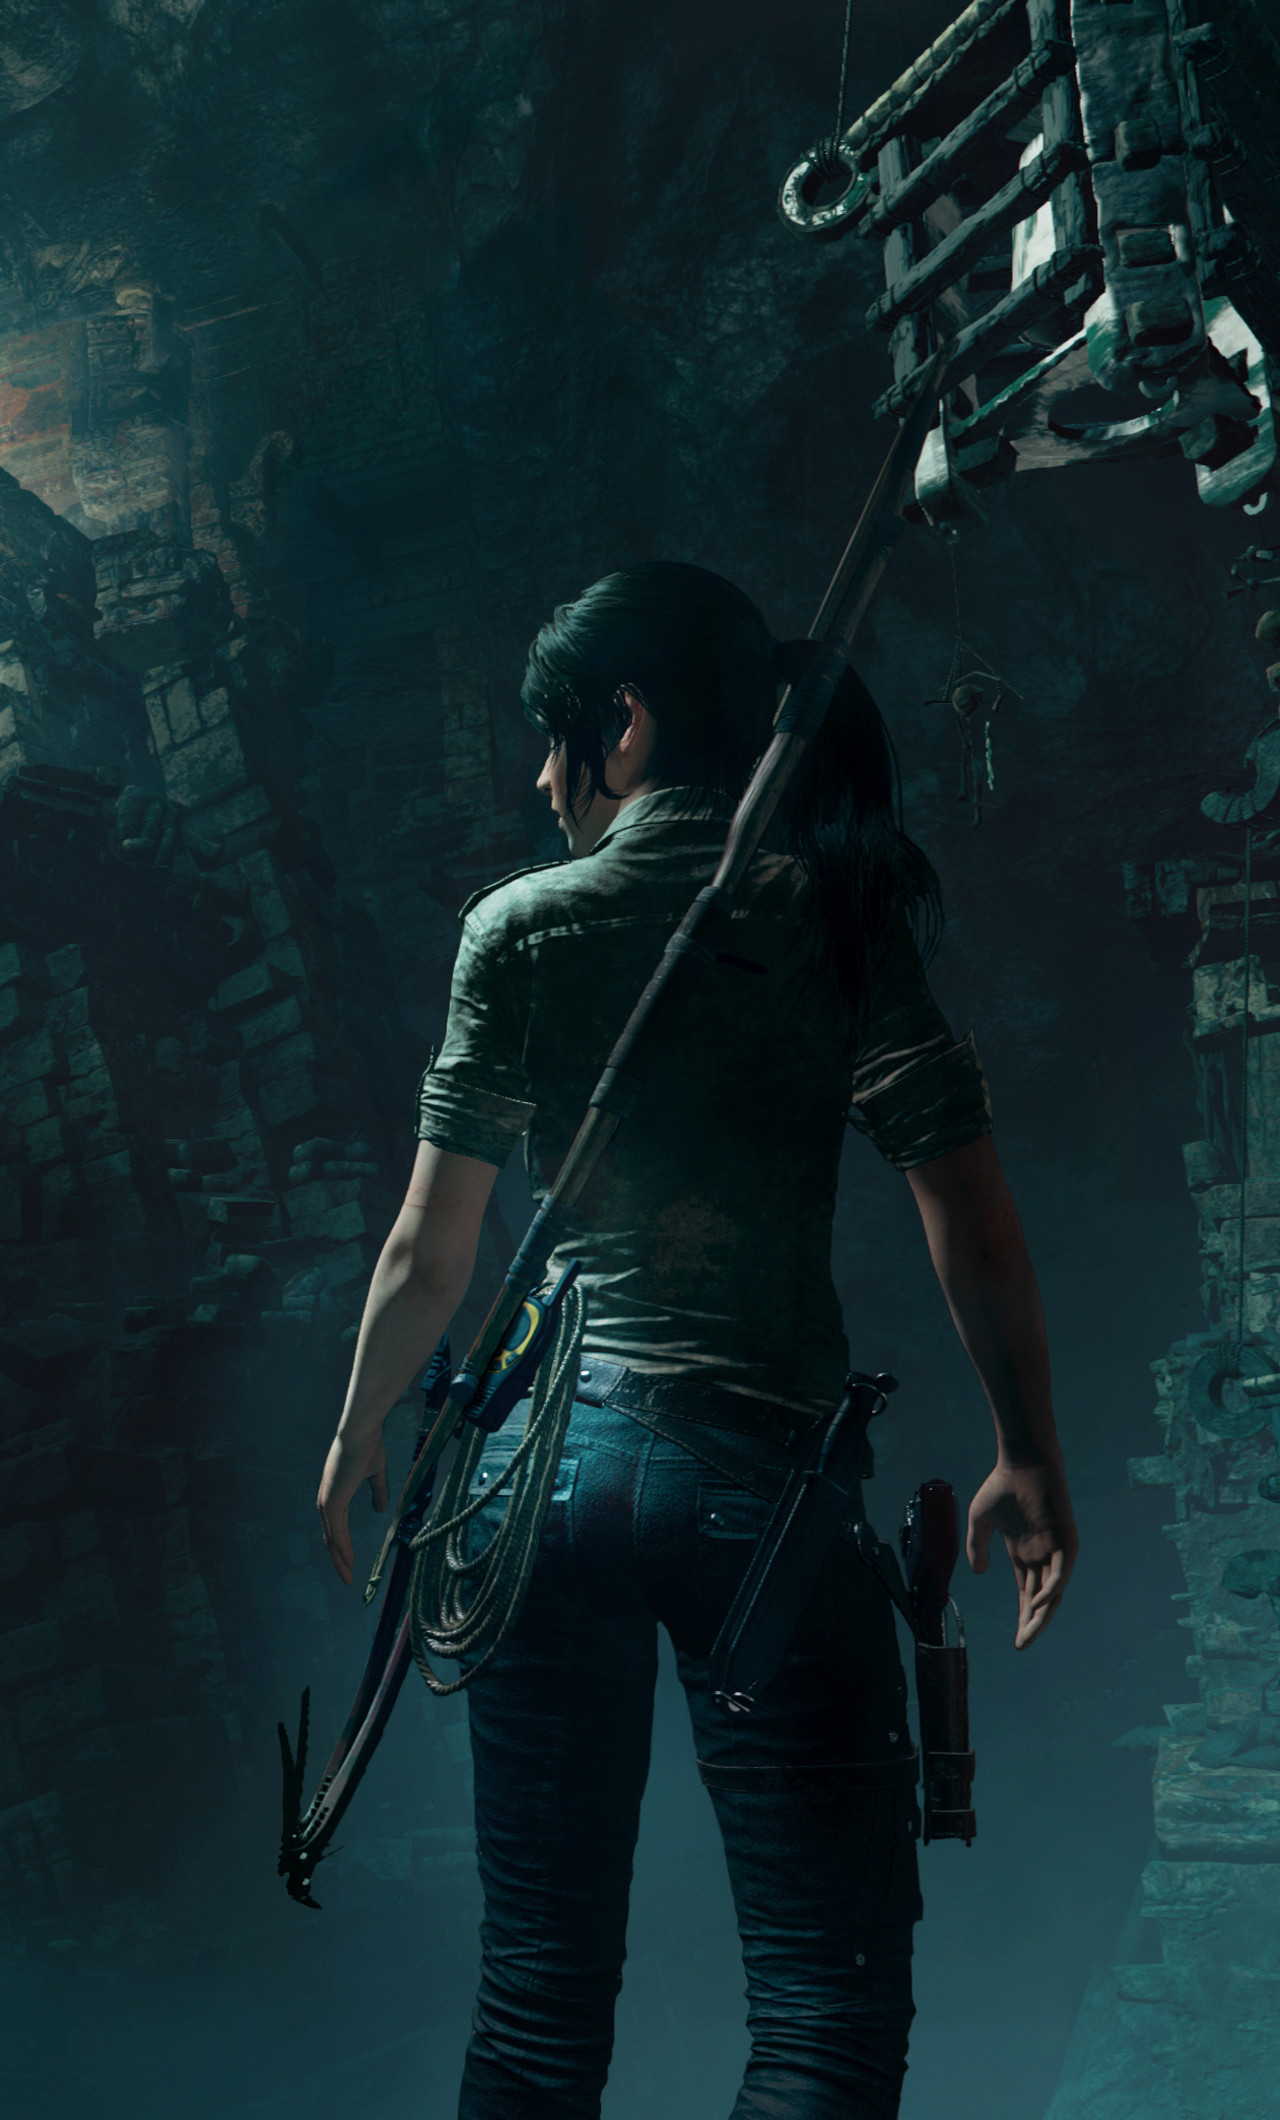 Tomb Raider Iphone Wallpaper 87 Images